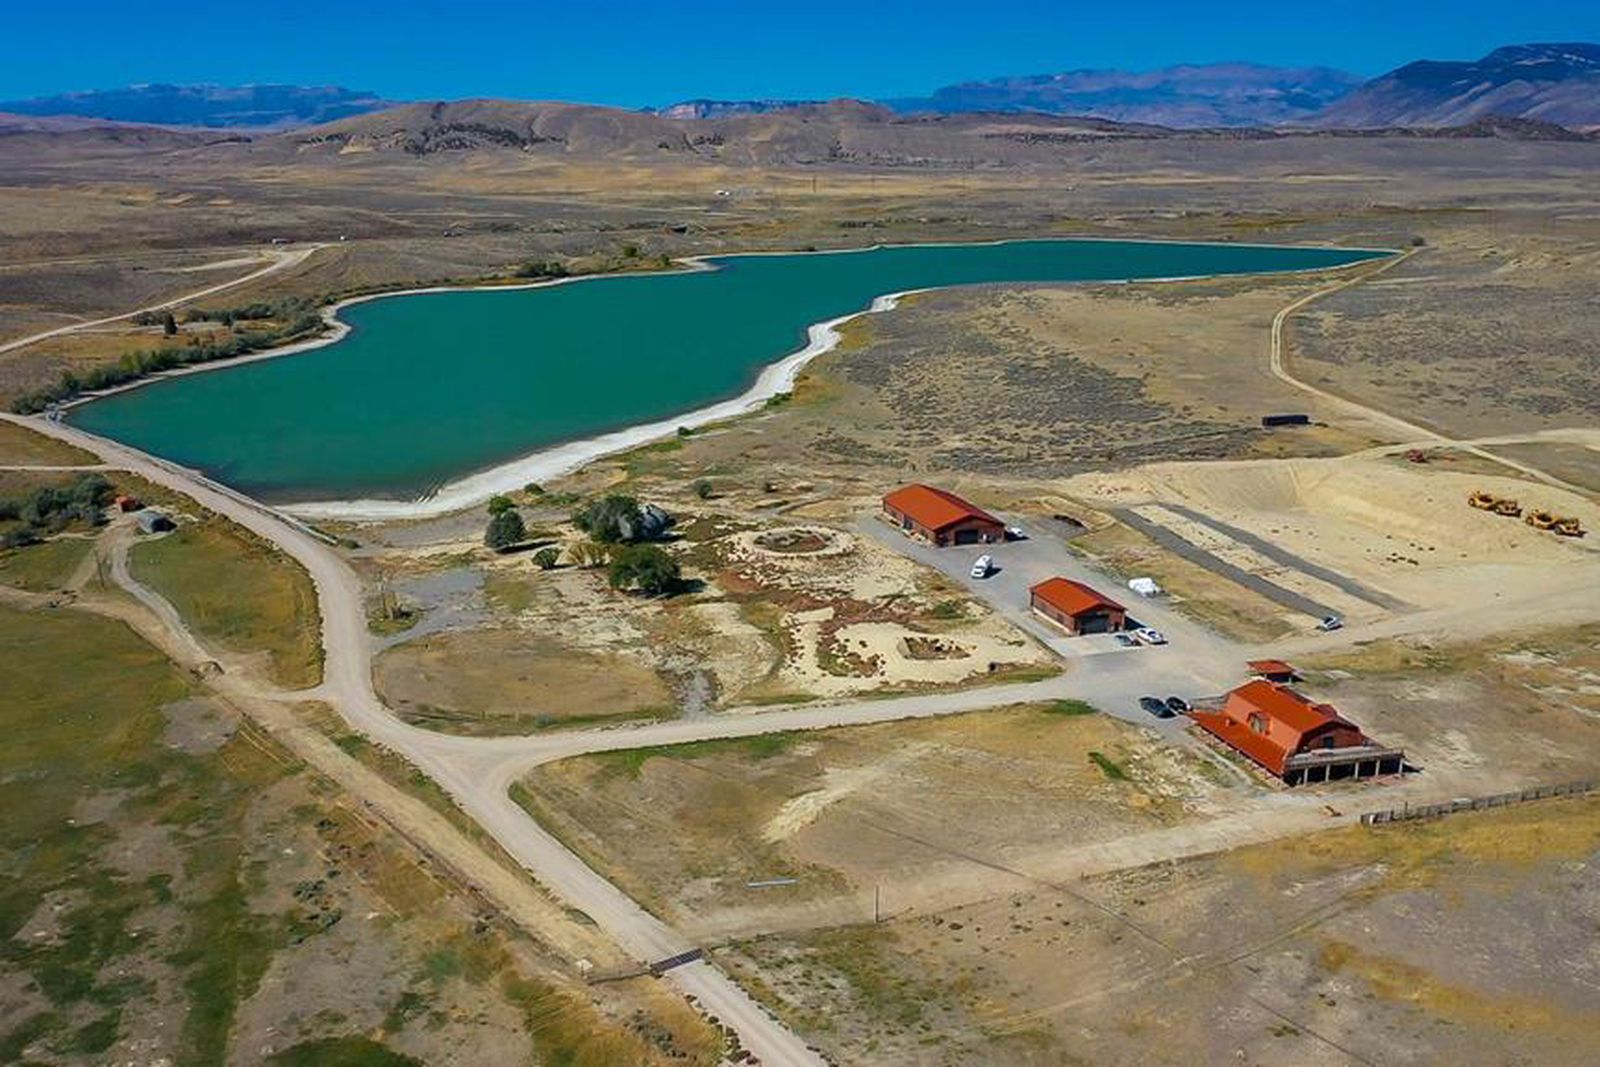 kanye west wyoming ranch sale auction 11 million usd price buy home house